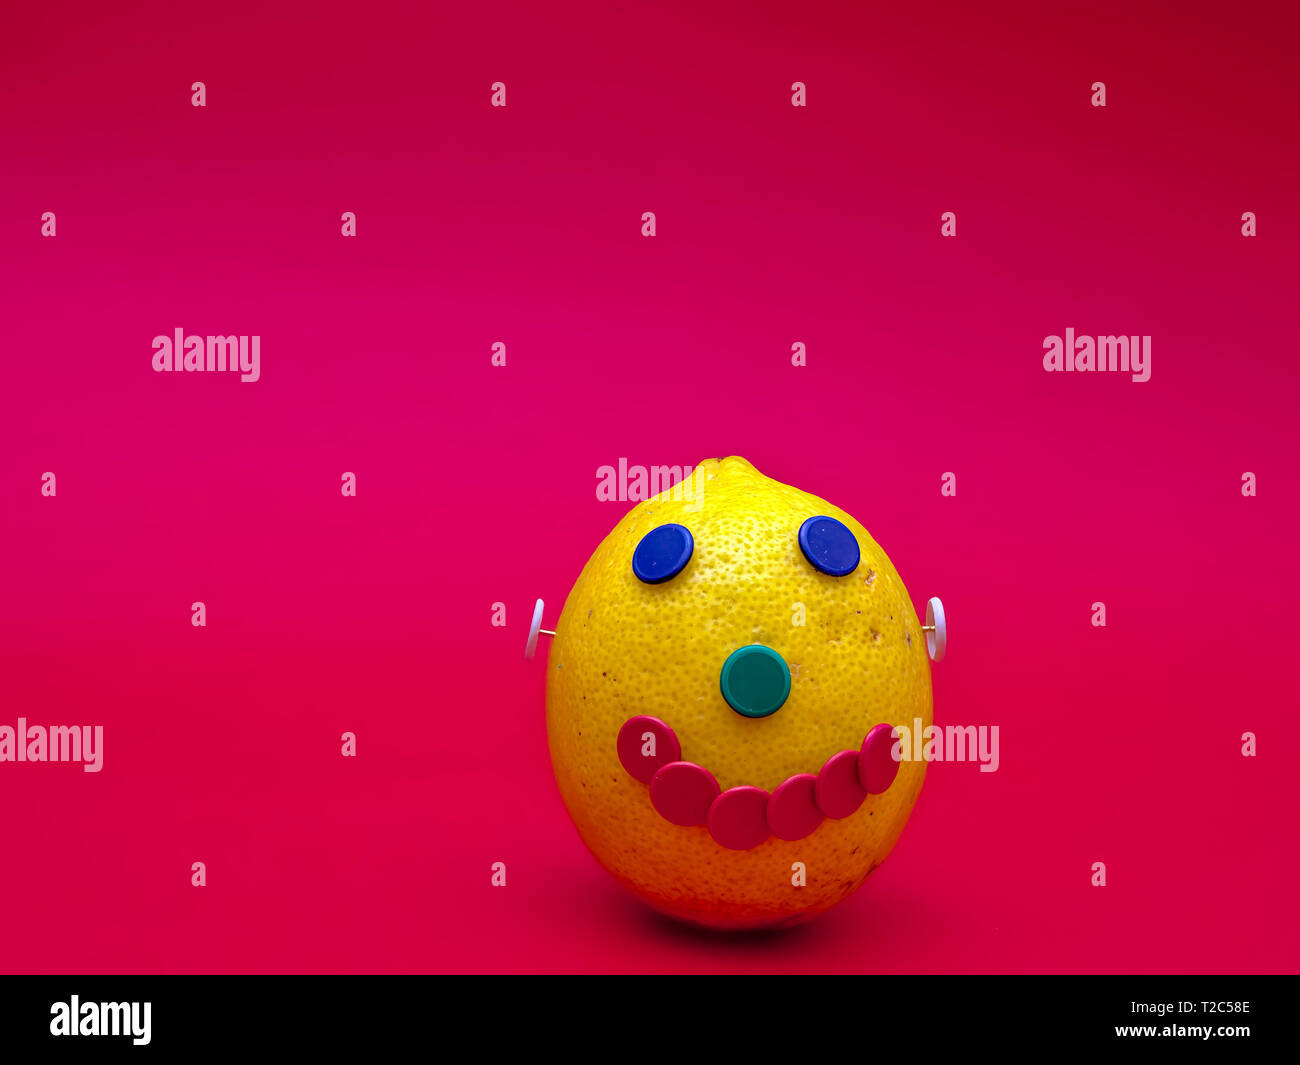 A happy face made with a lemon and colorful pins. Isolated on magenta background. - Stock Image